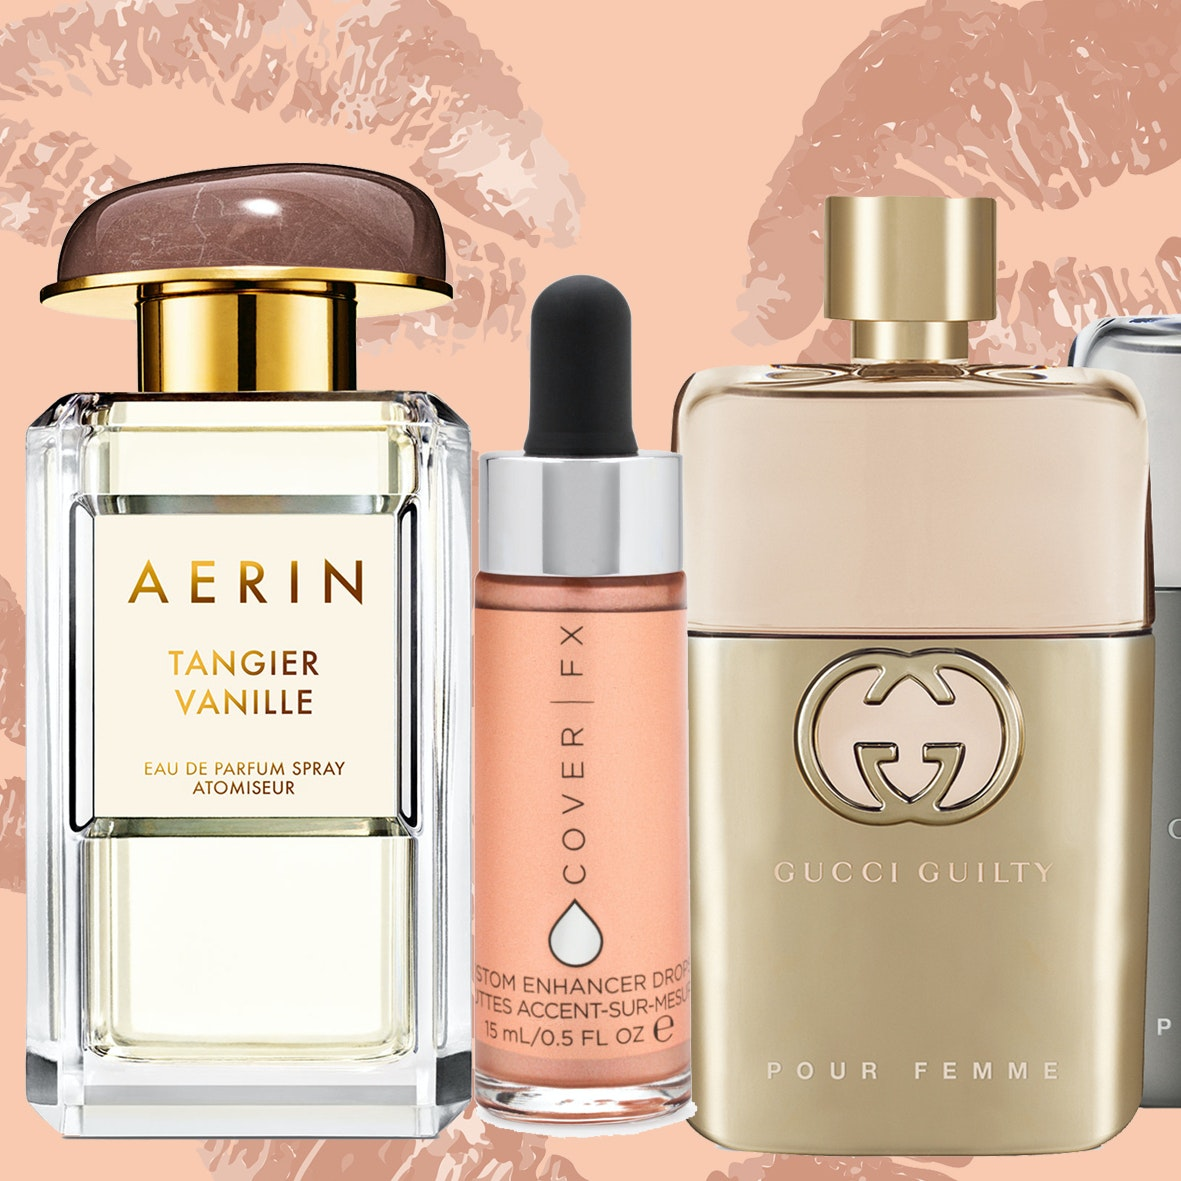 Ready to Boost Your Sex Appeal This Valentine's Day? Try These Editor-Approved Beauty Products